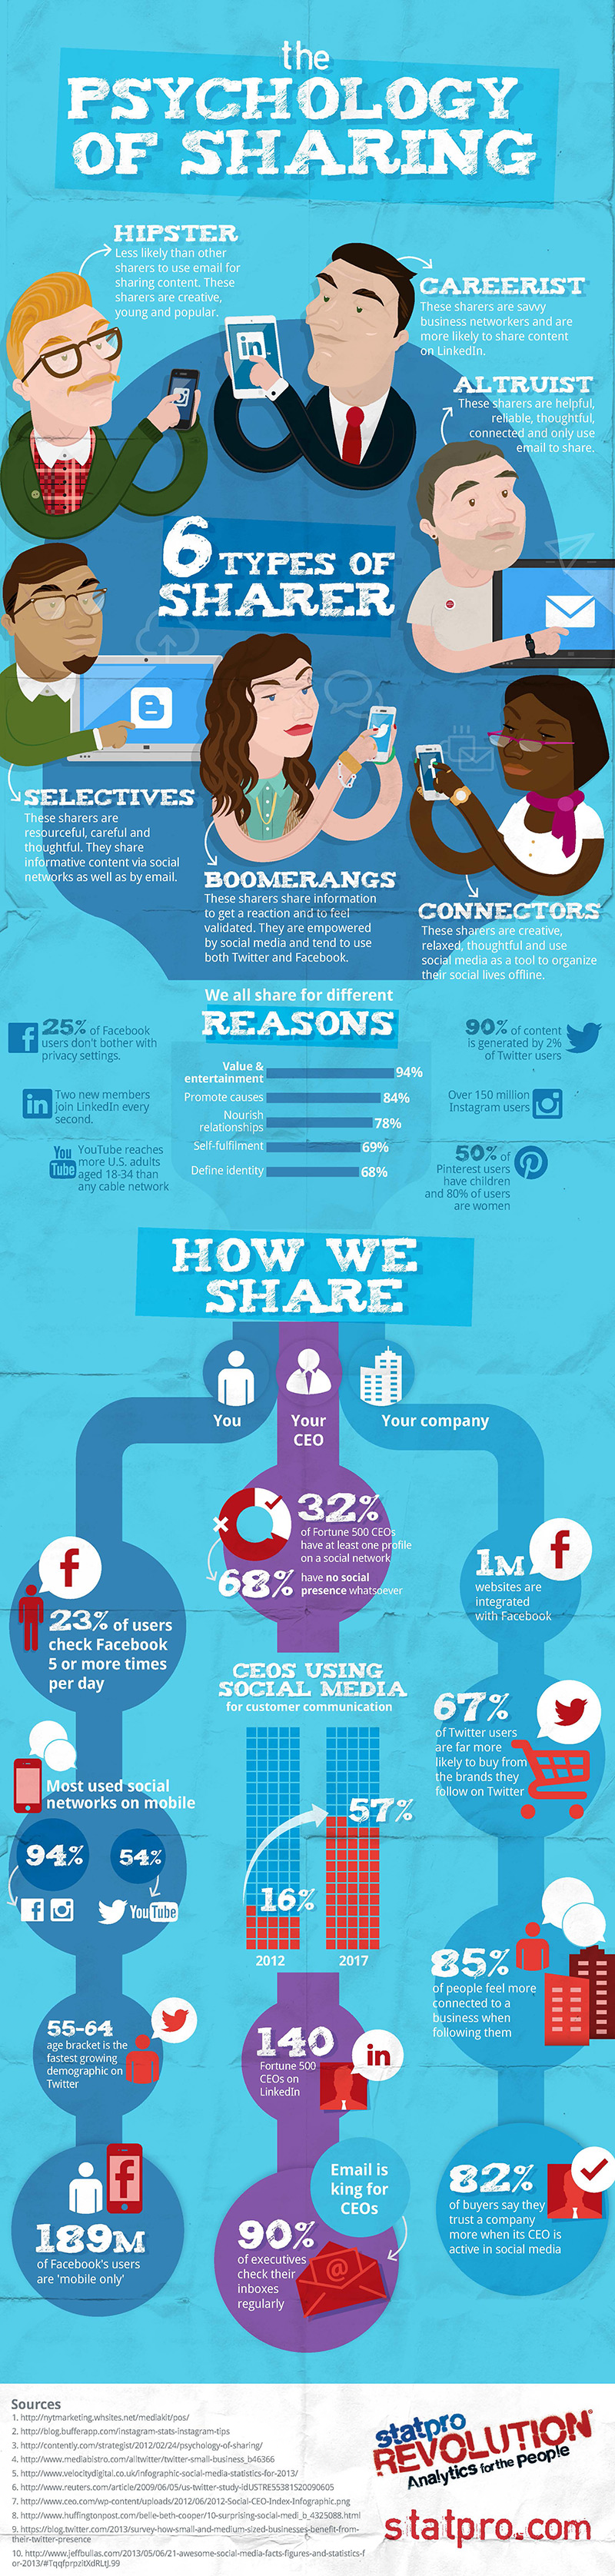 Psychology of Sharing Infographic